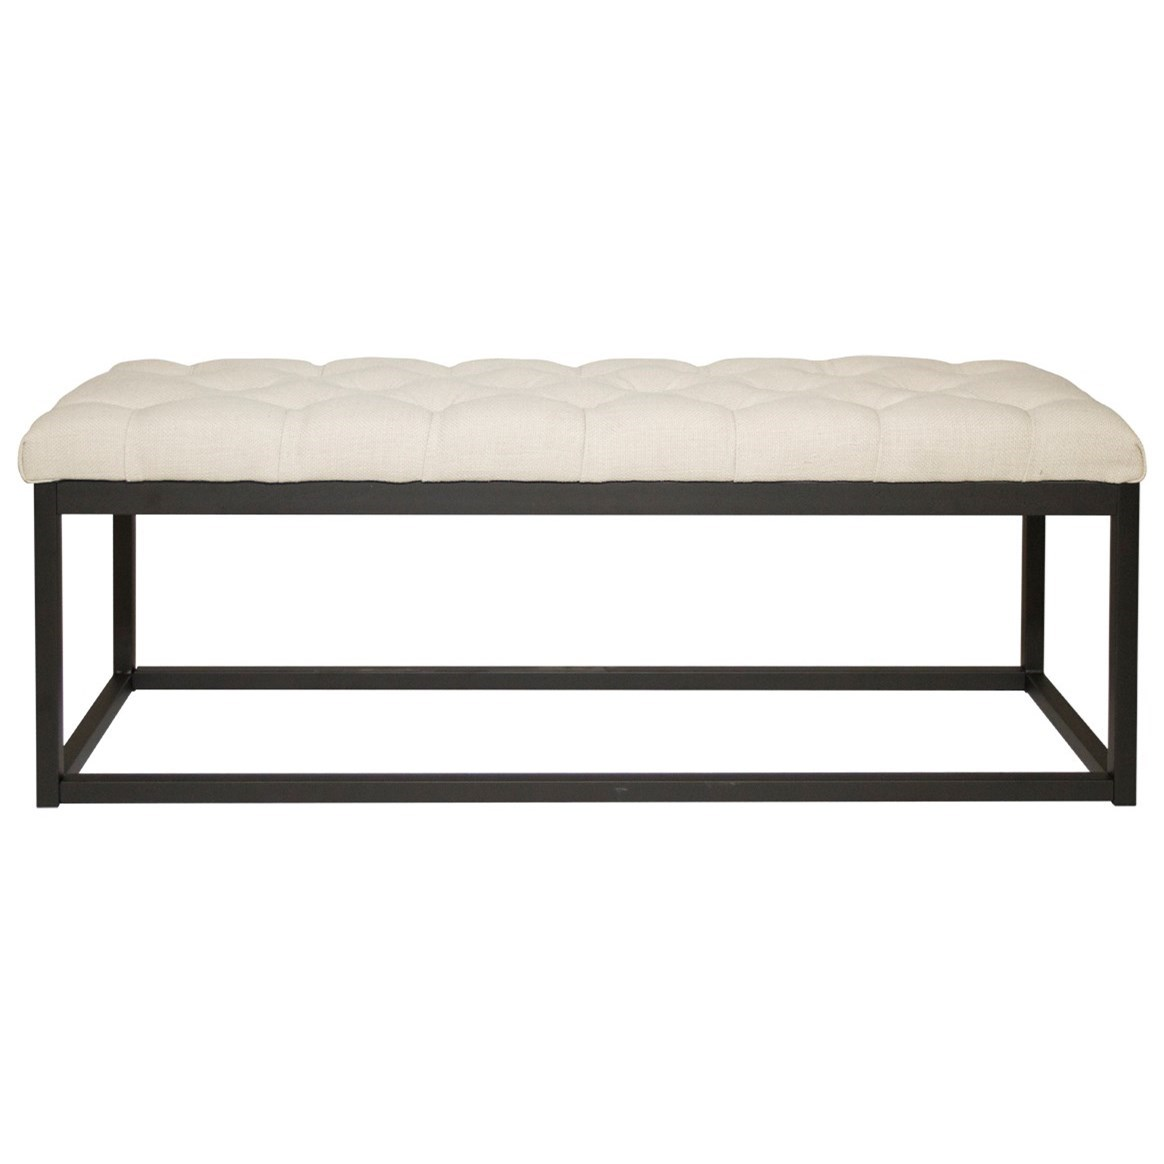 Mateo Small Bench by Diamond Sofa at Red Knot